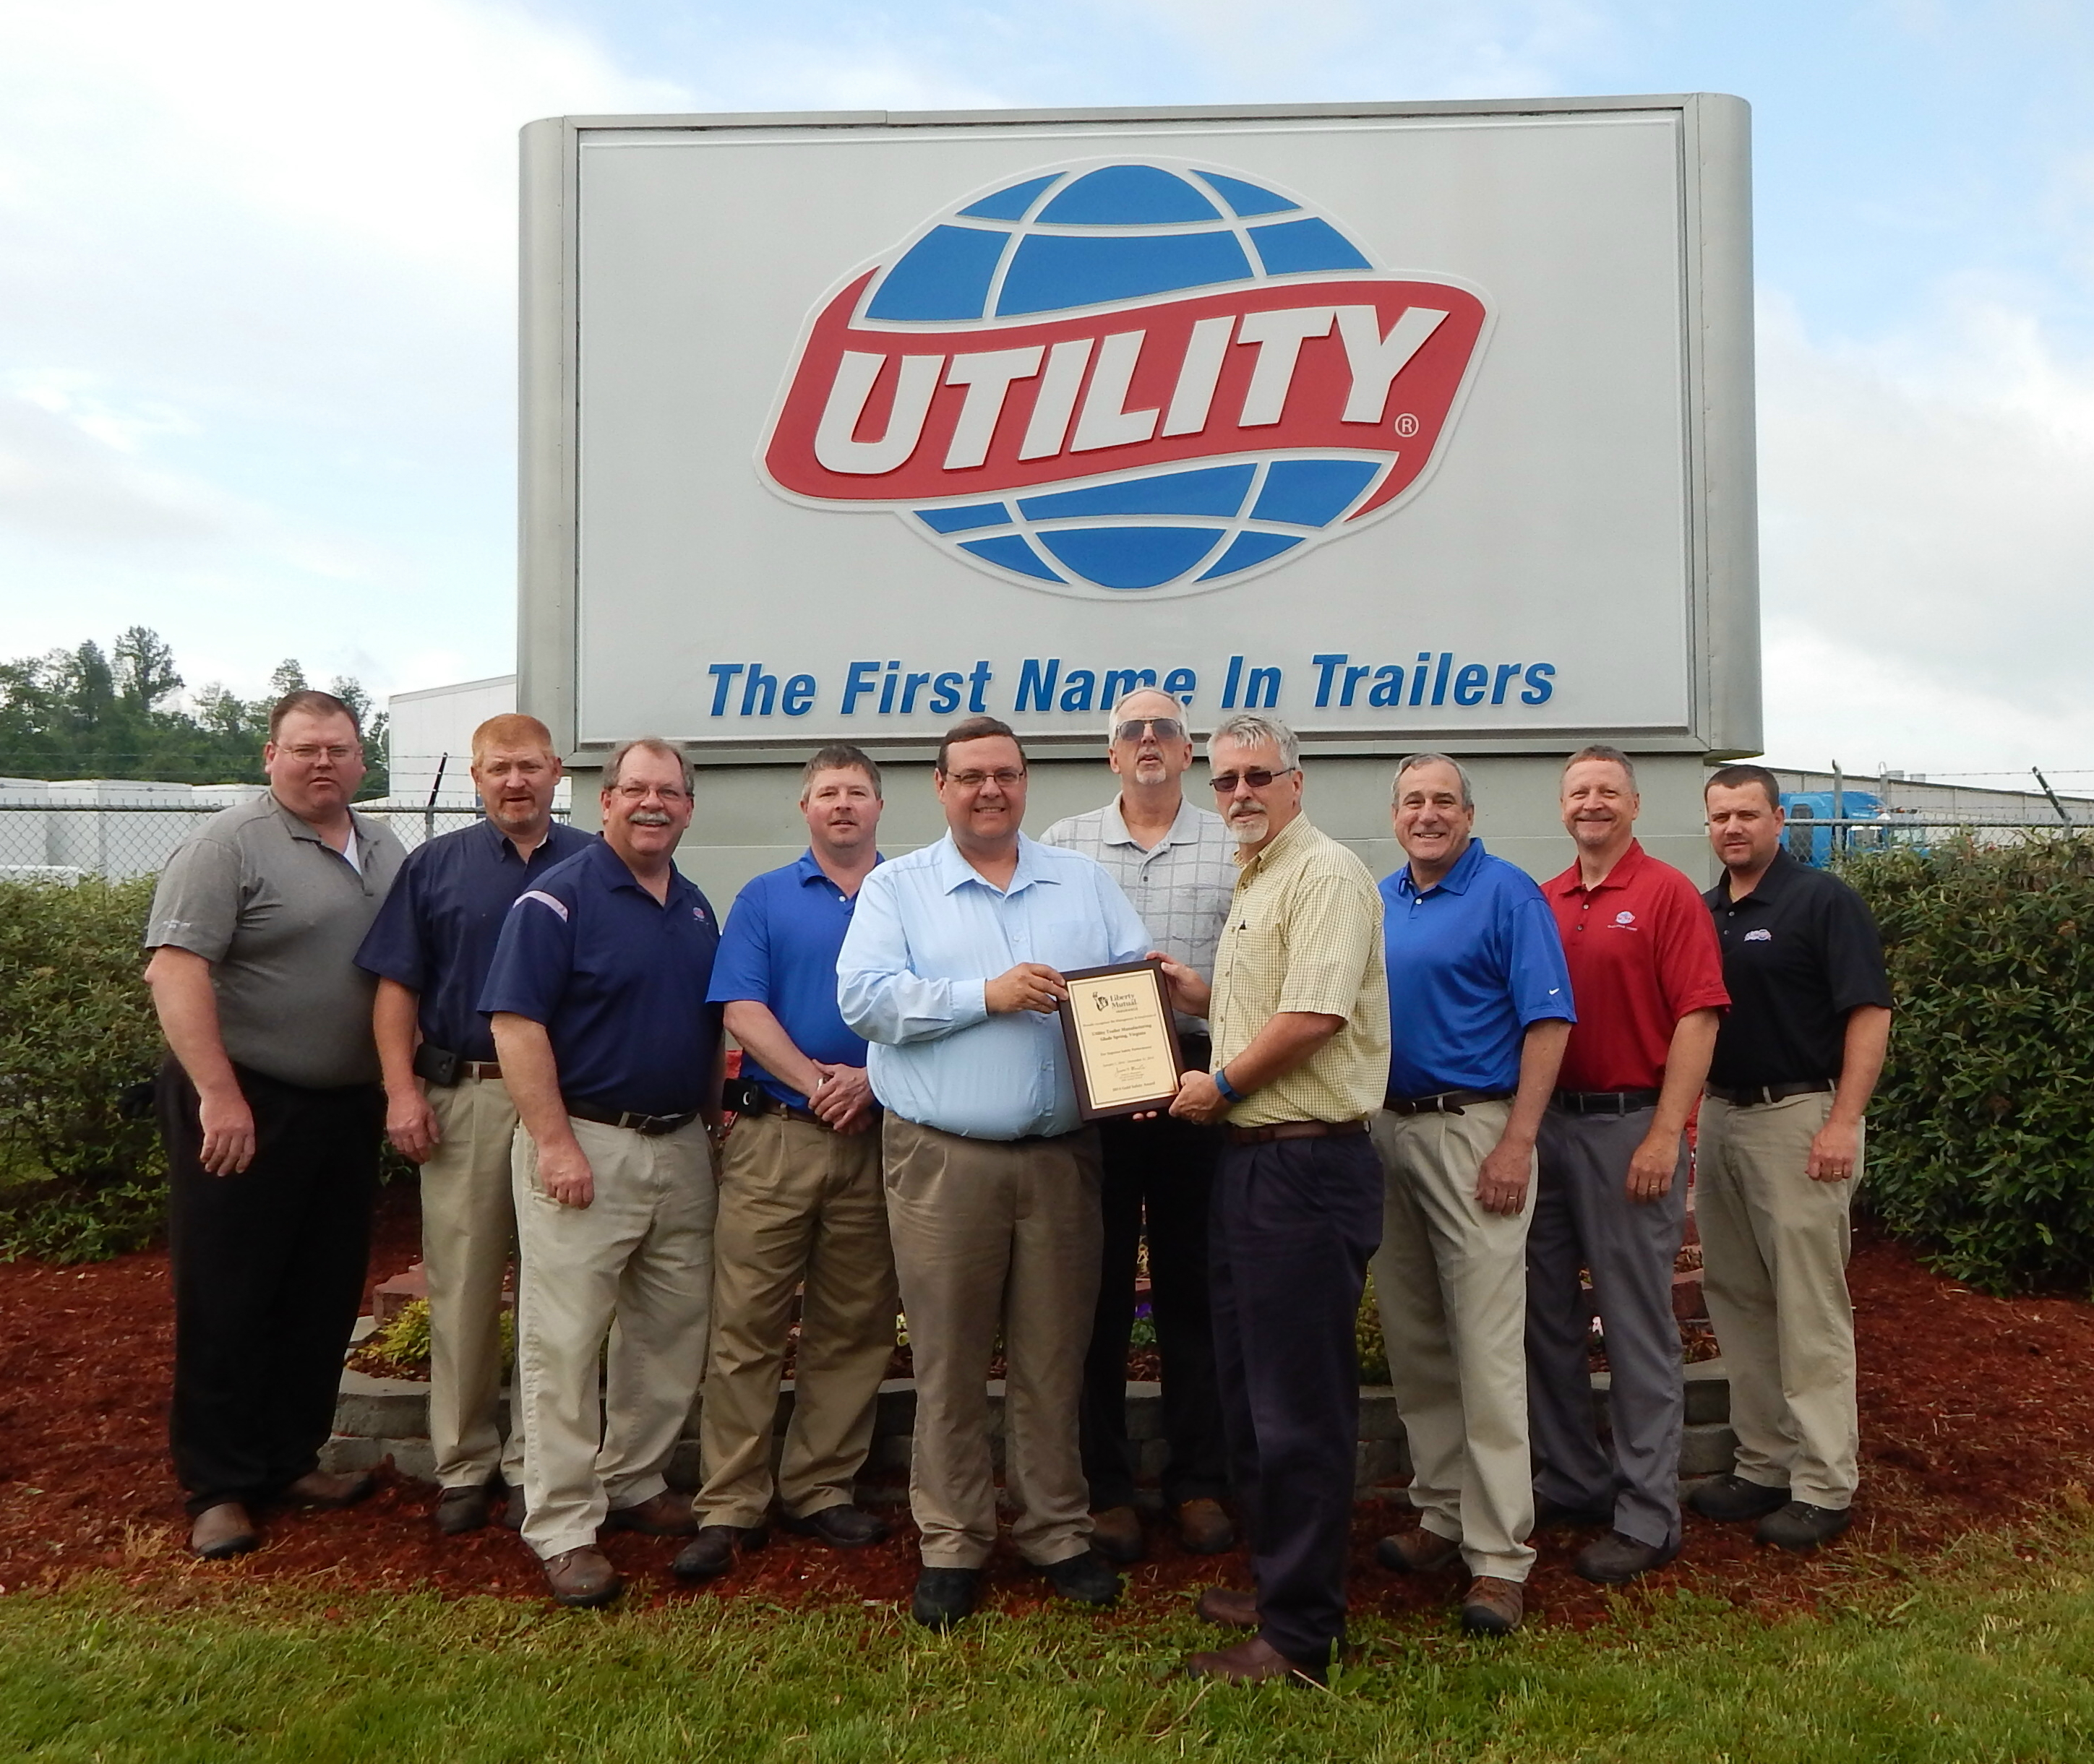 Utilitys Glade Spring Virginia Manufacturing Plant Receives Gold How To Wire Utility Trailer Safety Award Business